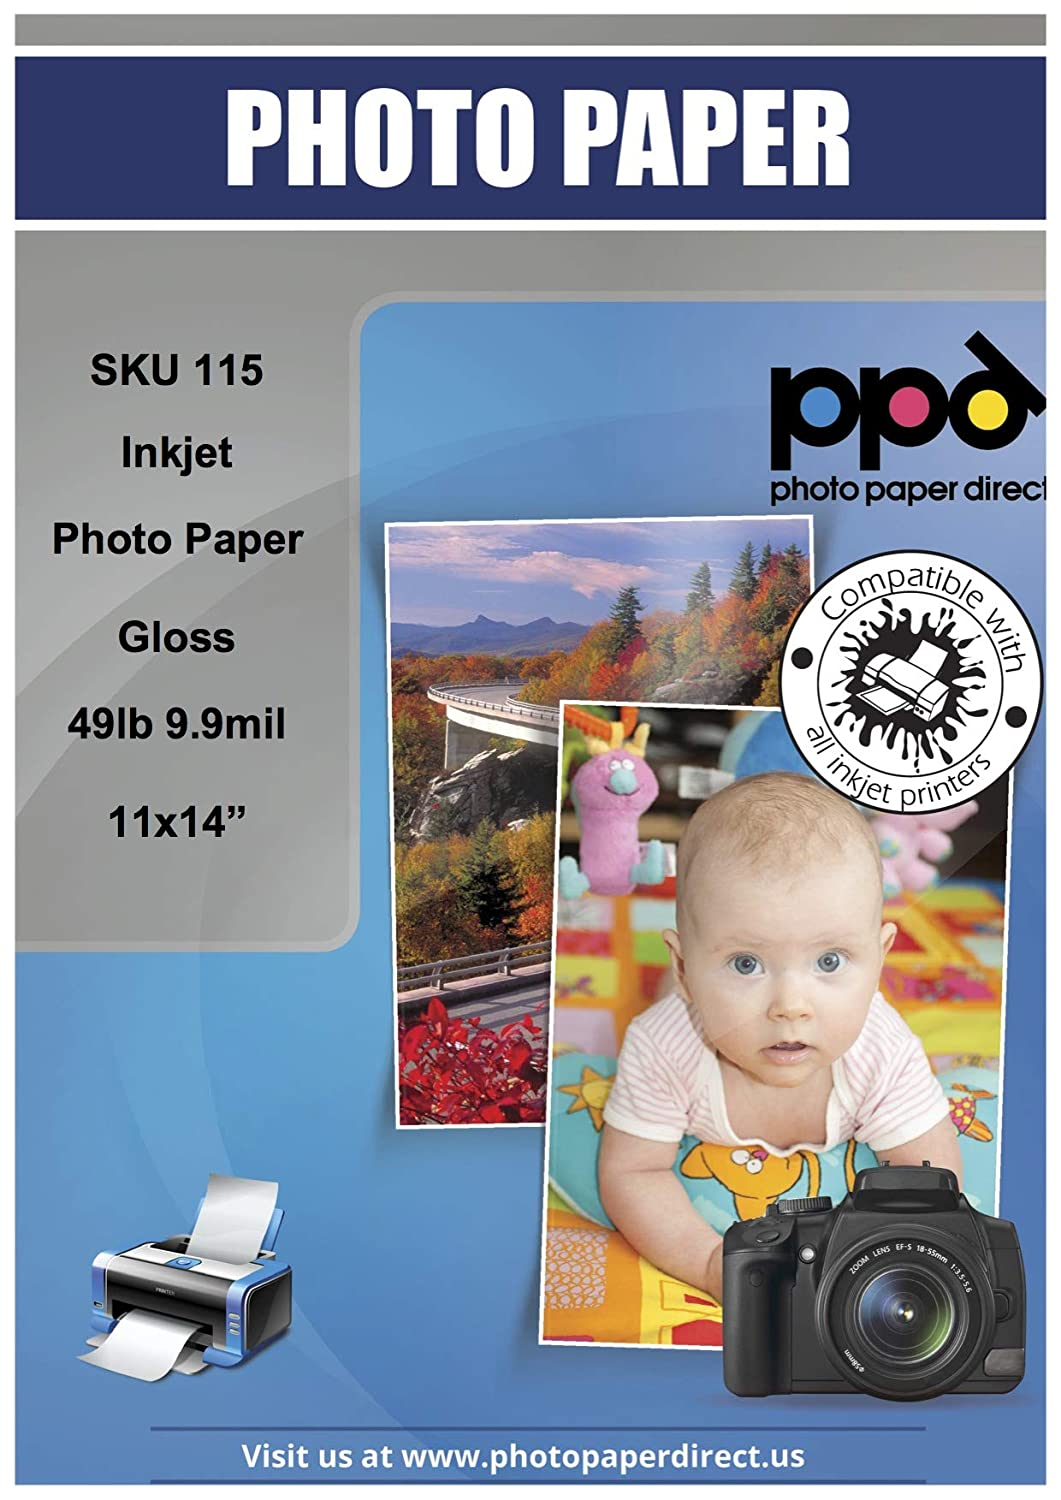 PPD Inkjet Glossy Photo Paper 11x14 49lb. 180gsm 9.9mil x 50 Sheets (PPD115-50) Photo Paper Direct